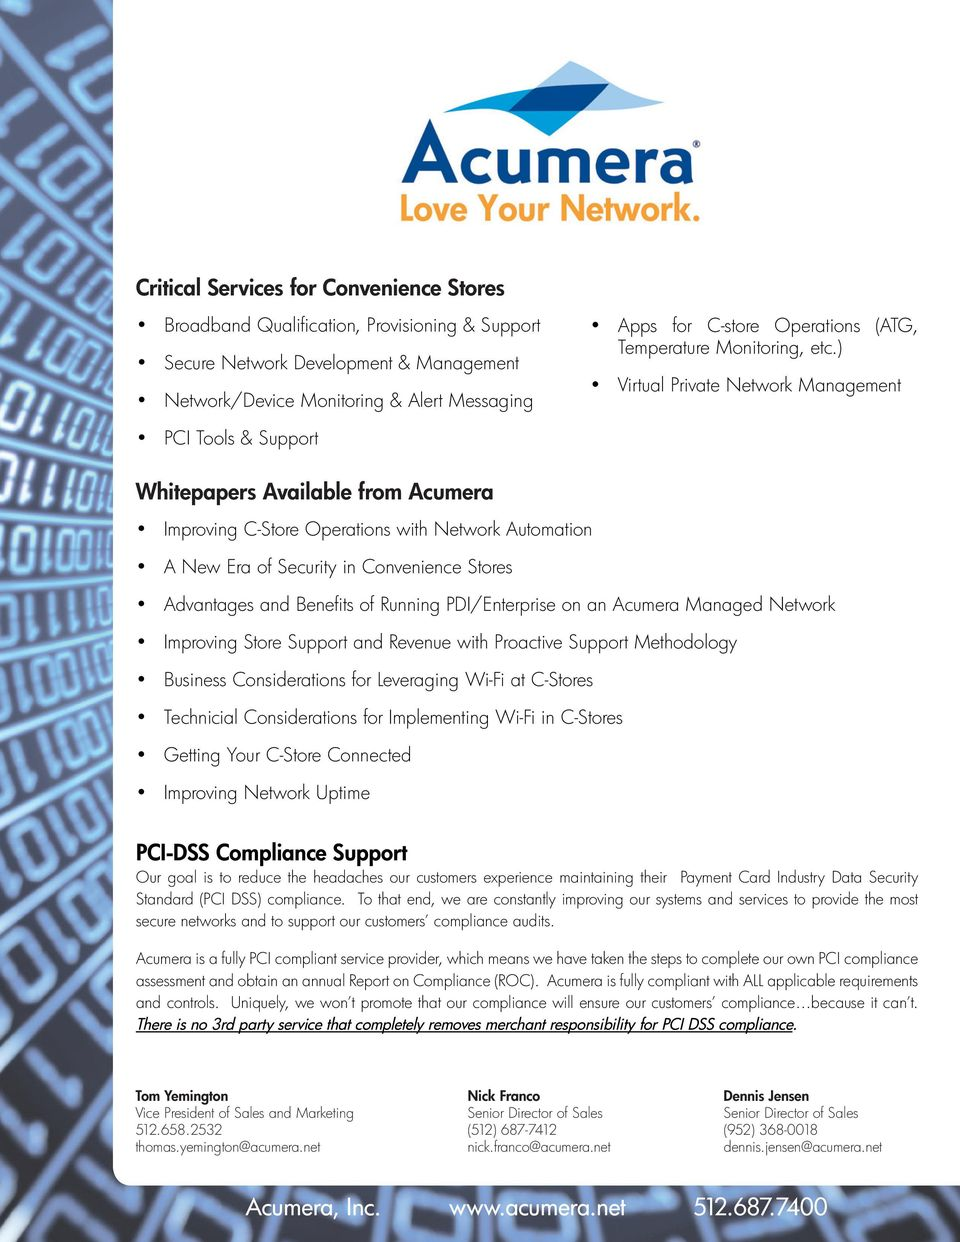 ) Virtual Private Network Management PCI Tools & Support Whitepapers Available from Acumera Improving C-Store Operations with Network Automation A New Era of Security in Convenience Stores Advantages